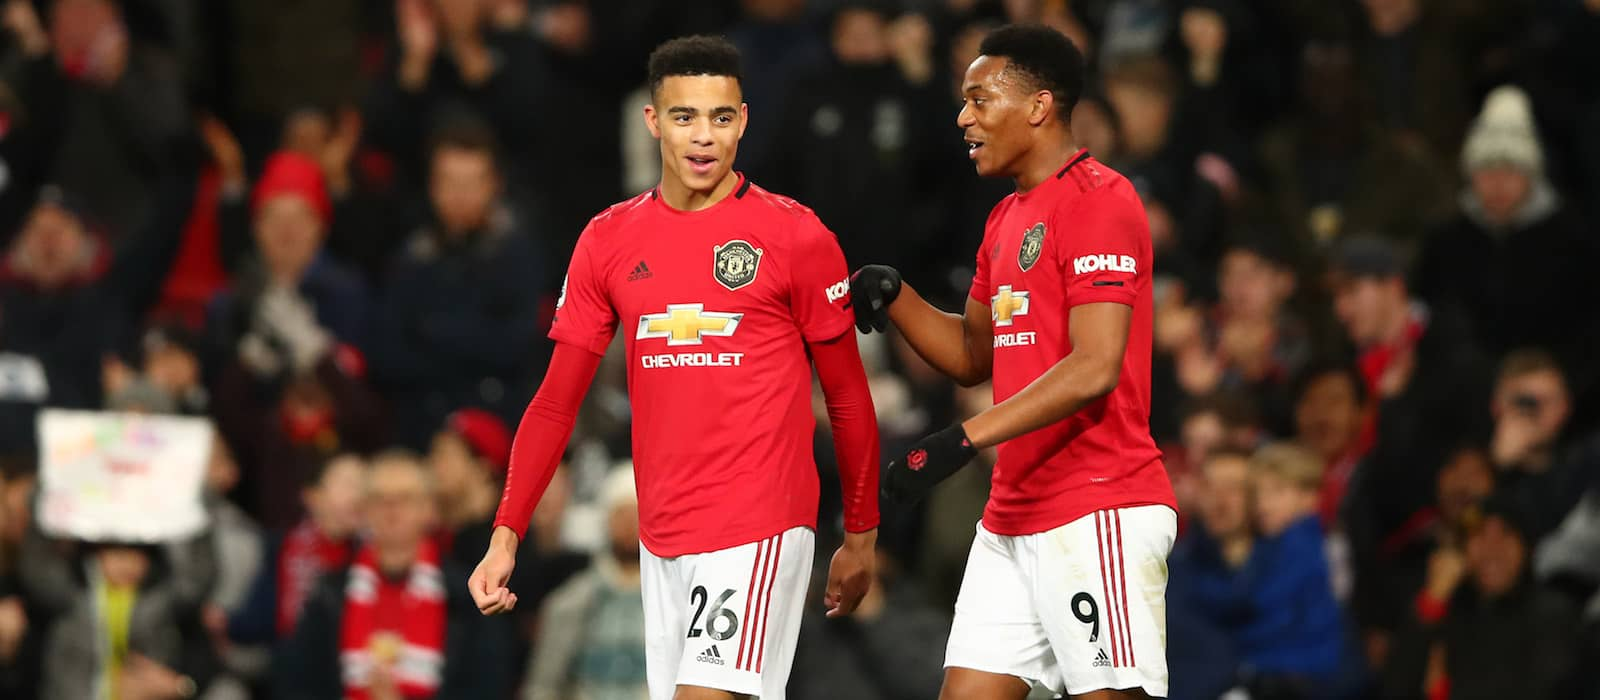 Manchester United fans laud Mason Greenwood's goalscoring display